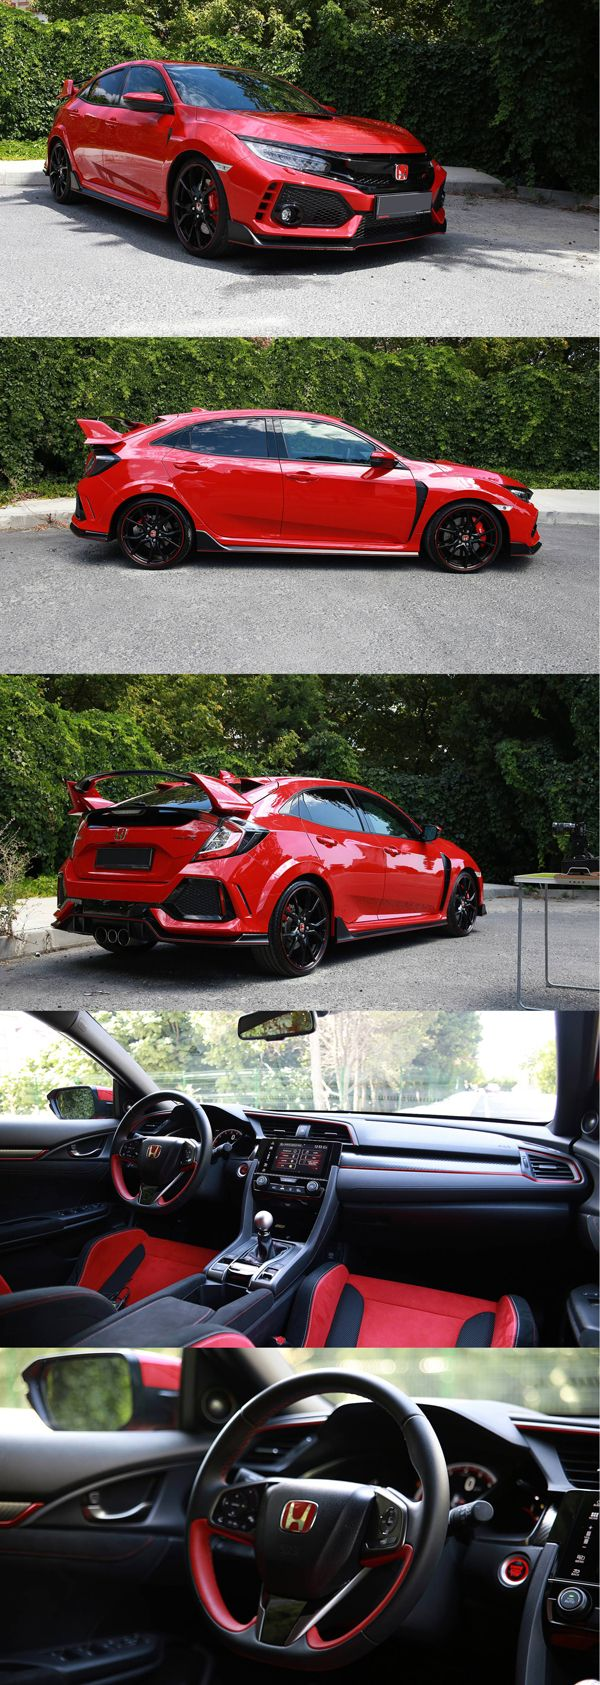 The Engineering Team Made A Nice Video Detailing The Heart Of The Honda Civic Type R Gt Honda Civic Typer Honda Civic Honda Civic Type R Honda Civic Sport